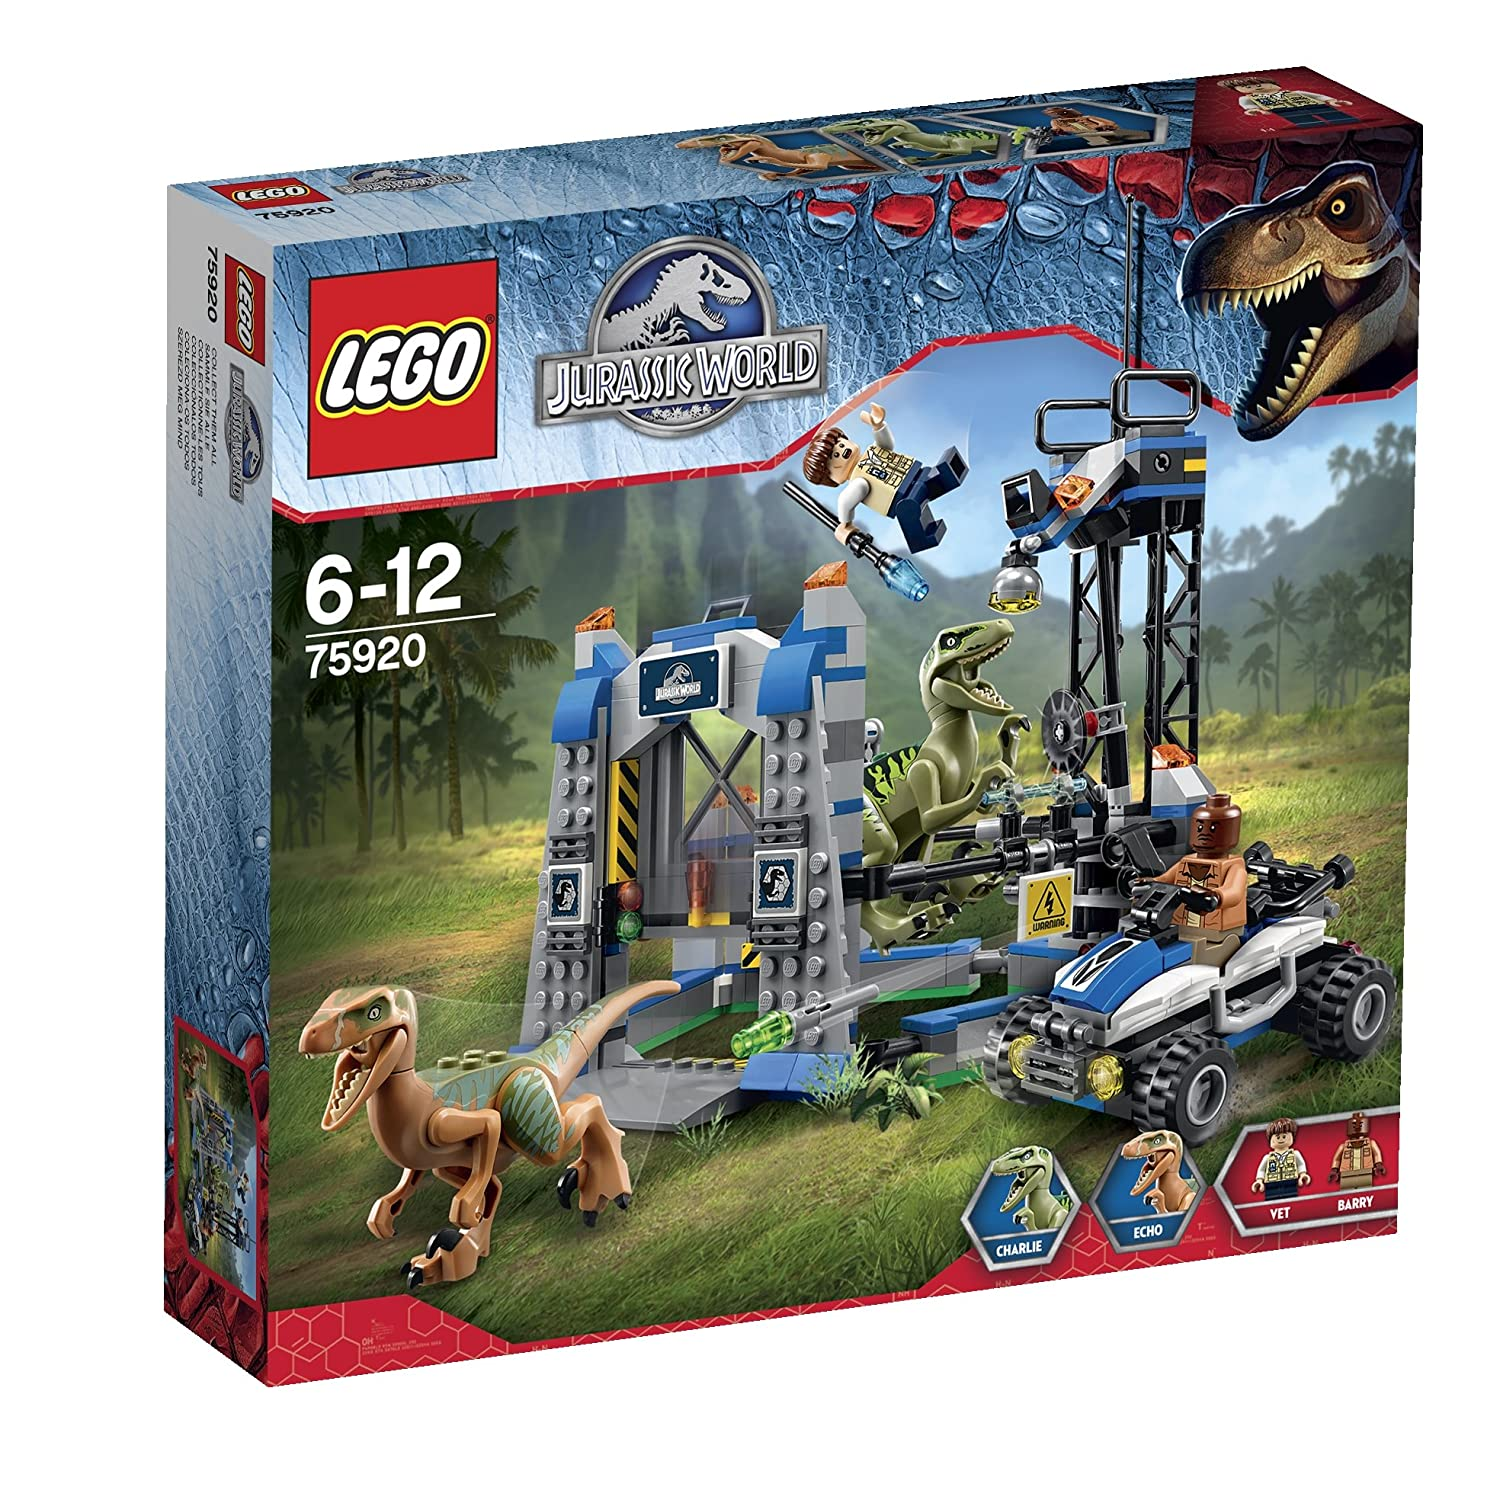 Top 9 Best Lego Jurassic Park Sets Reviews in 2020 4